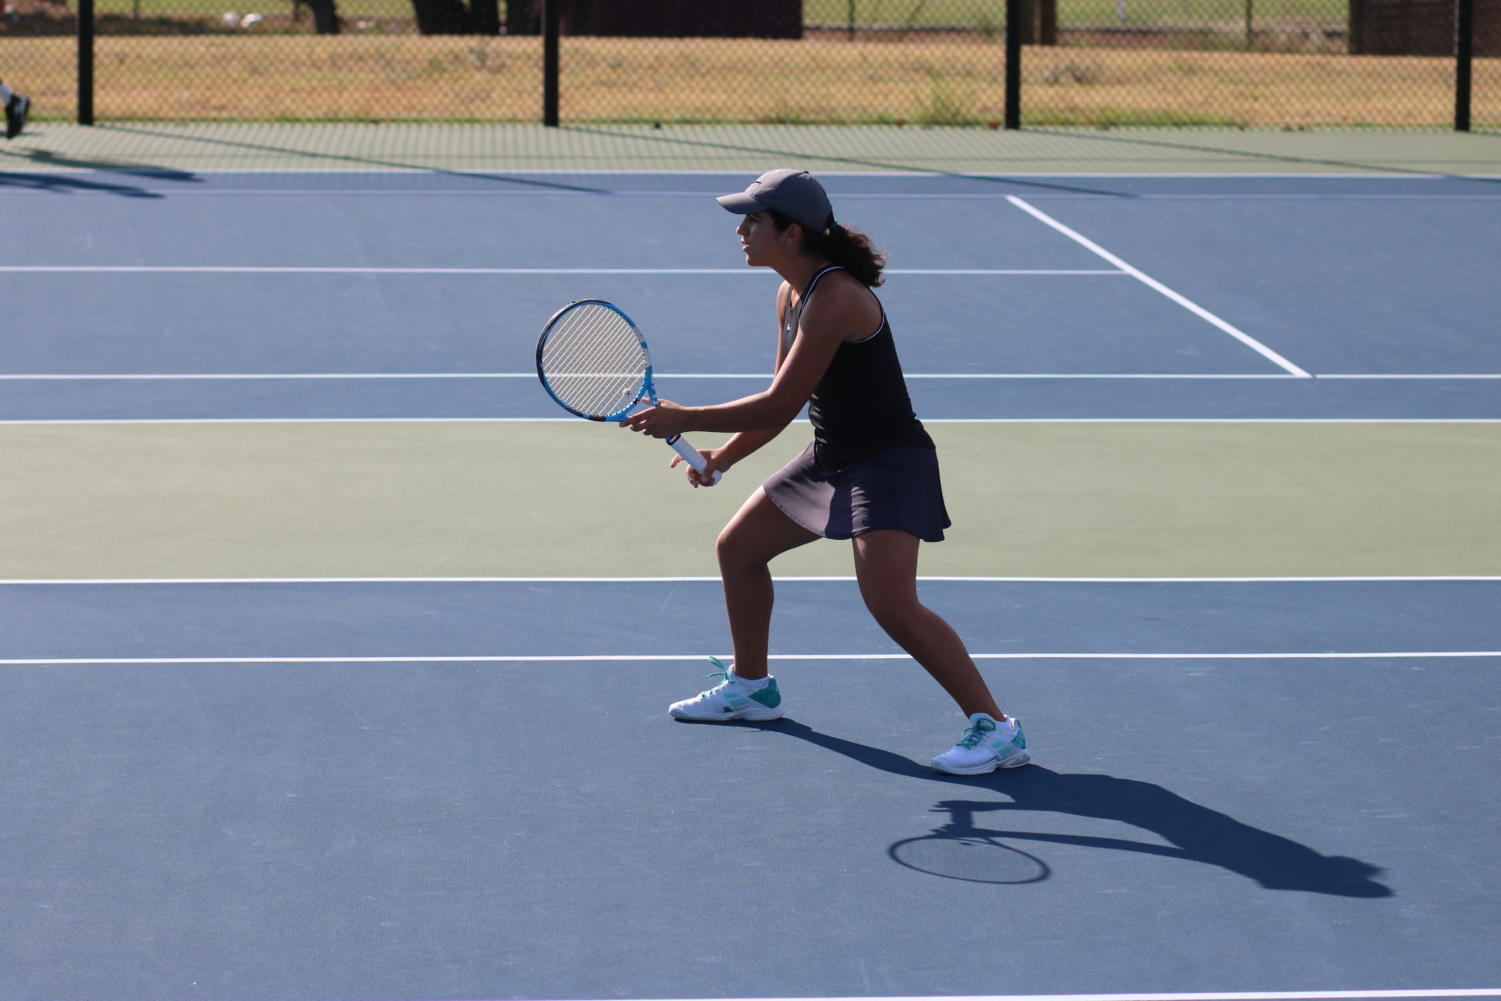 Vandegrift varsity tennis player waits for the serve during the Girls' Singles match.